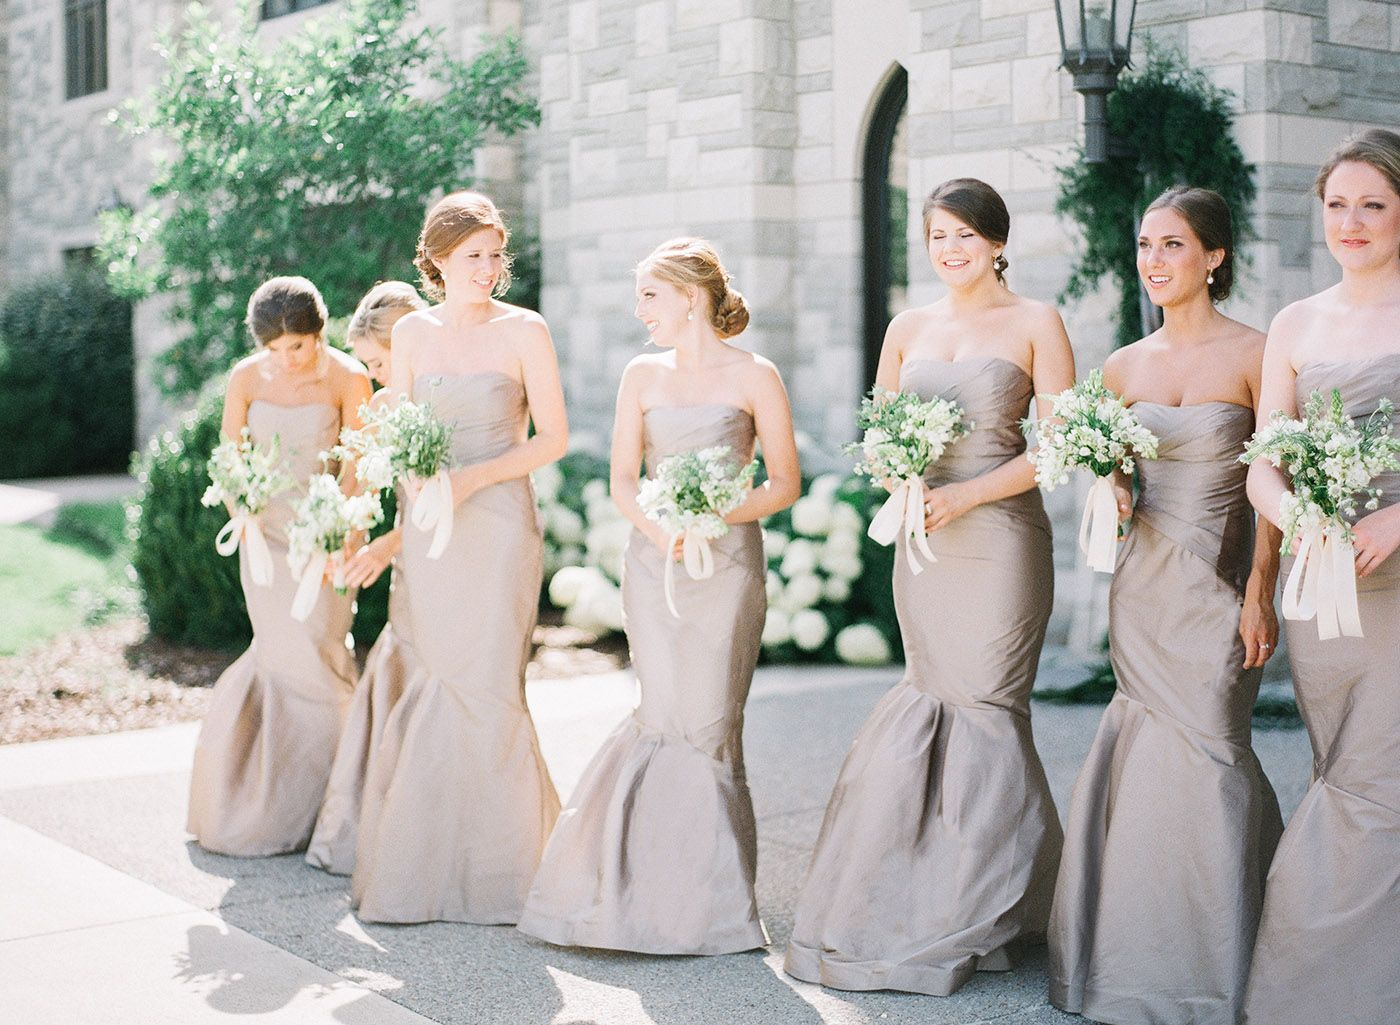 Champagne color bridesmaid dresses covenant presbyterian church champagne color bridesmaid dresses covenant presbyterian church nashville tn wedding photo leslee mitchell ombrellifo Choice Image